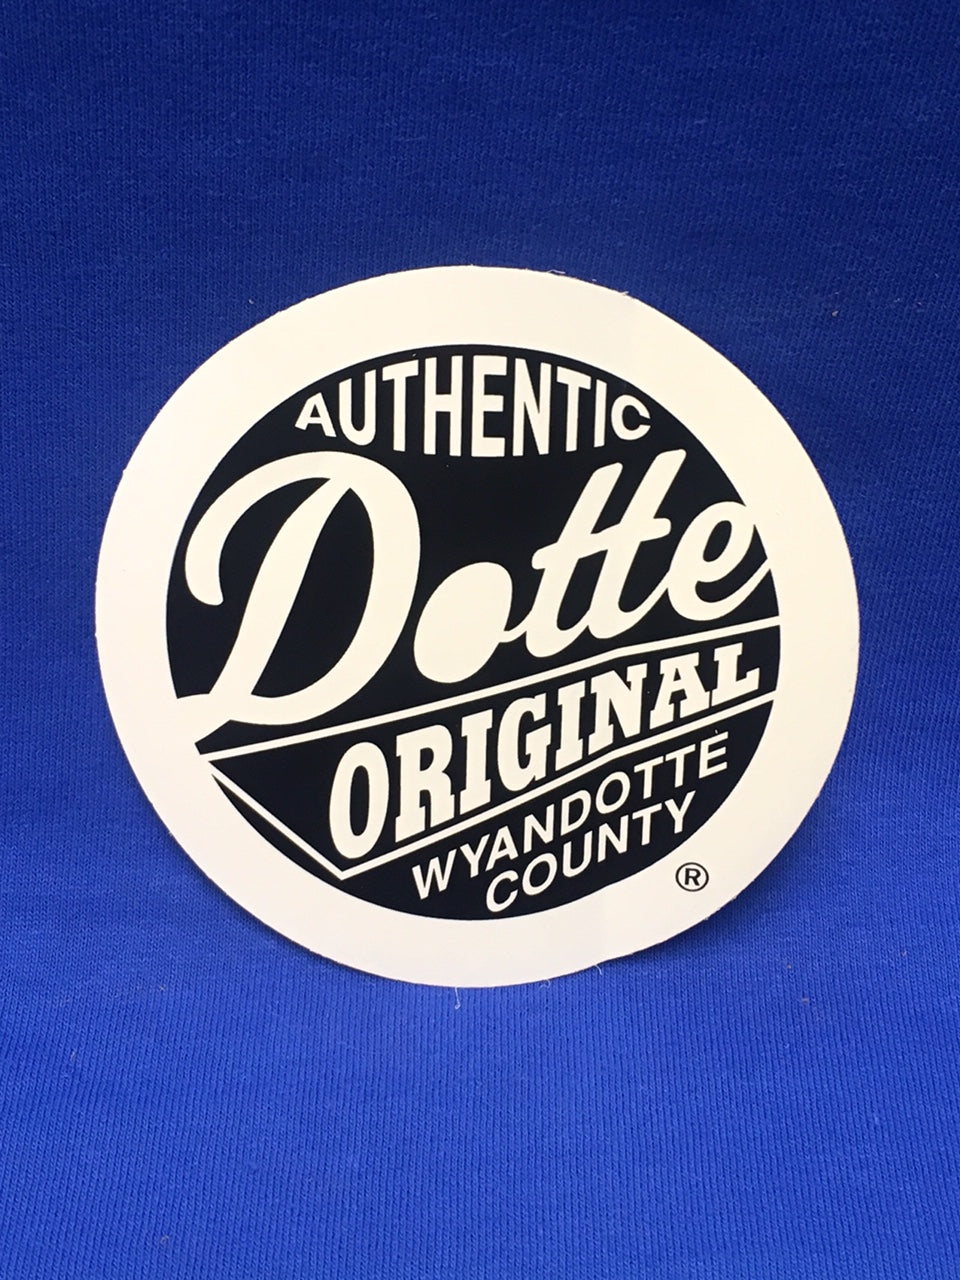 Dotte Stickers